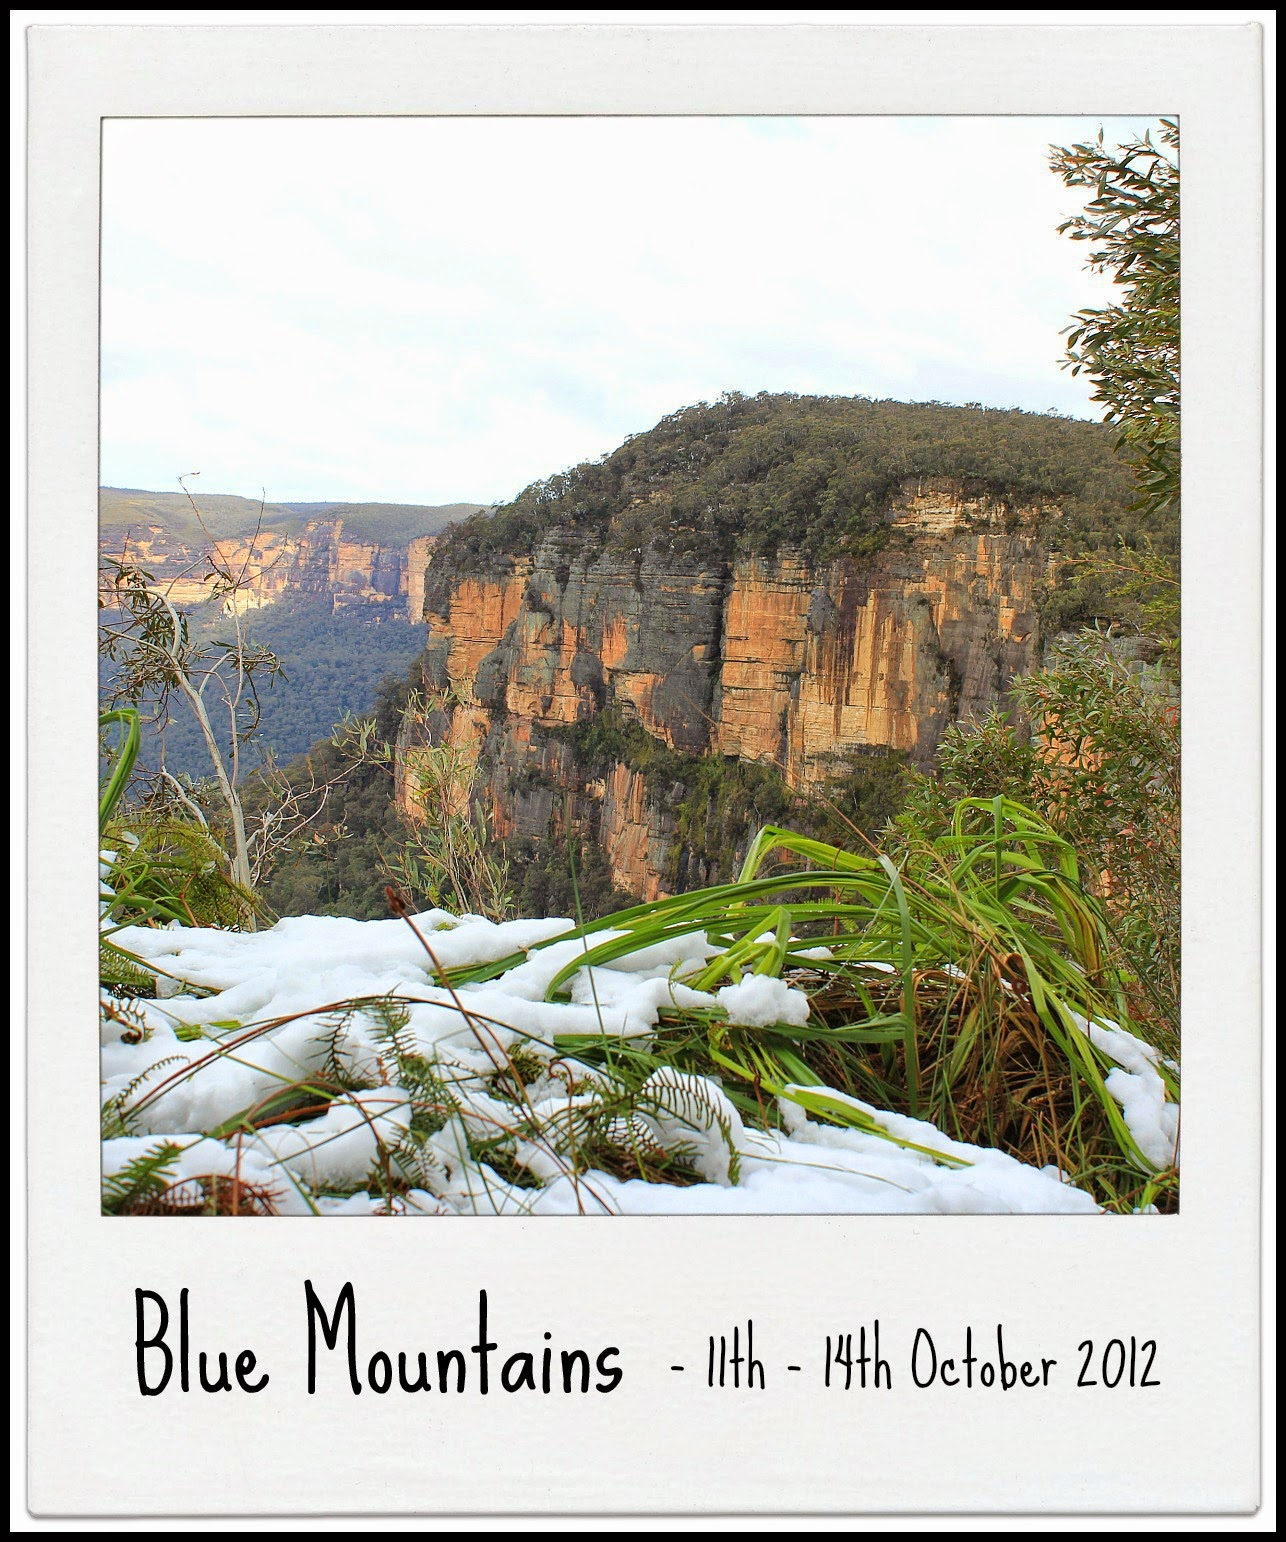 http://addictedtwotravel.blogspot.com.au/2012/12/blue-mountains-getaway-oct-2012.html